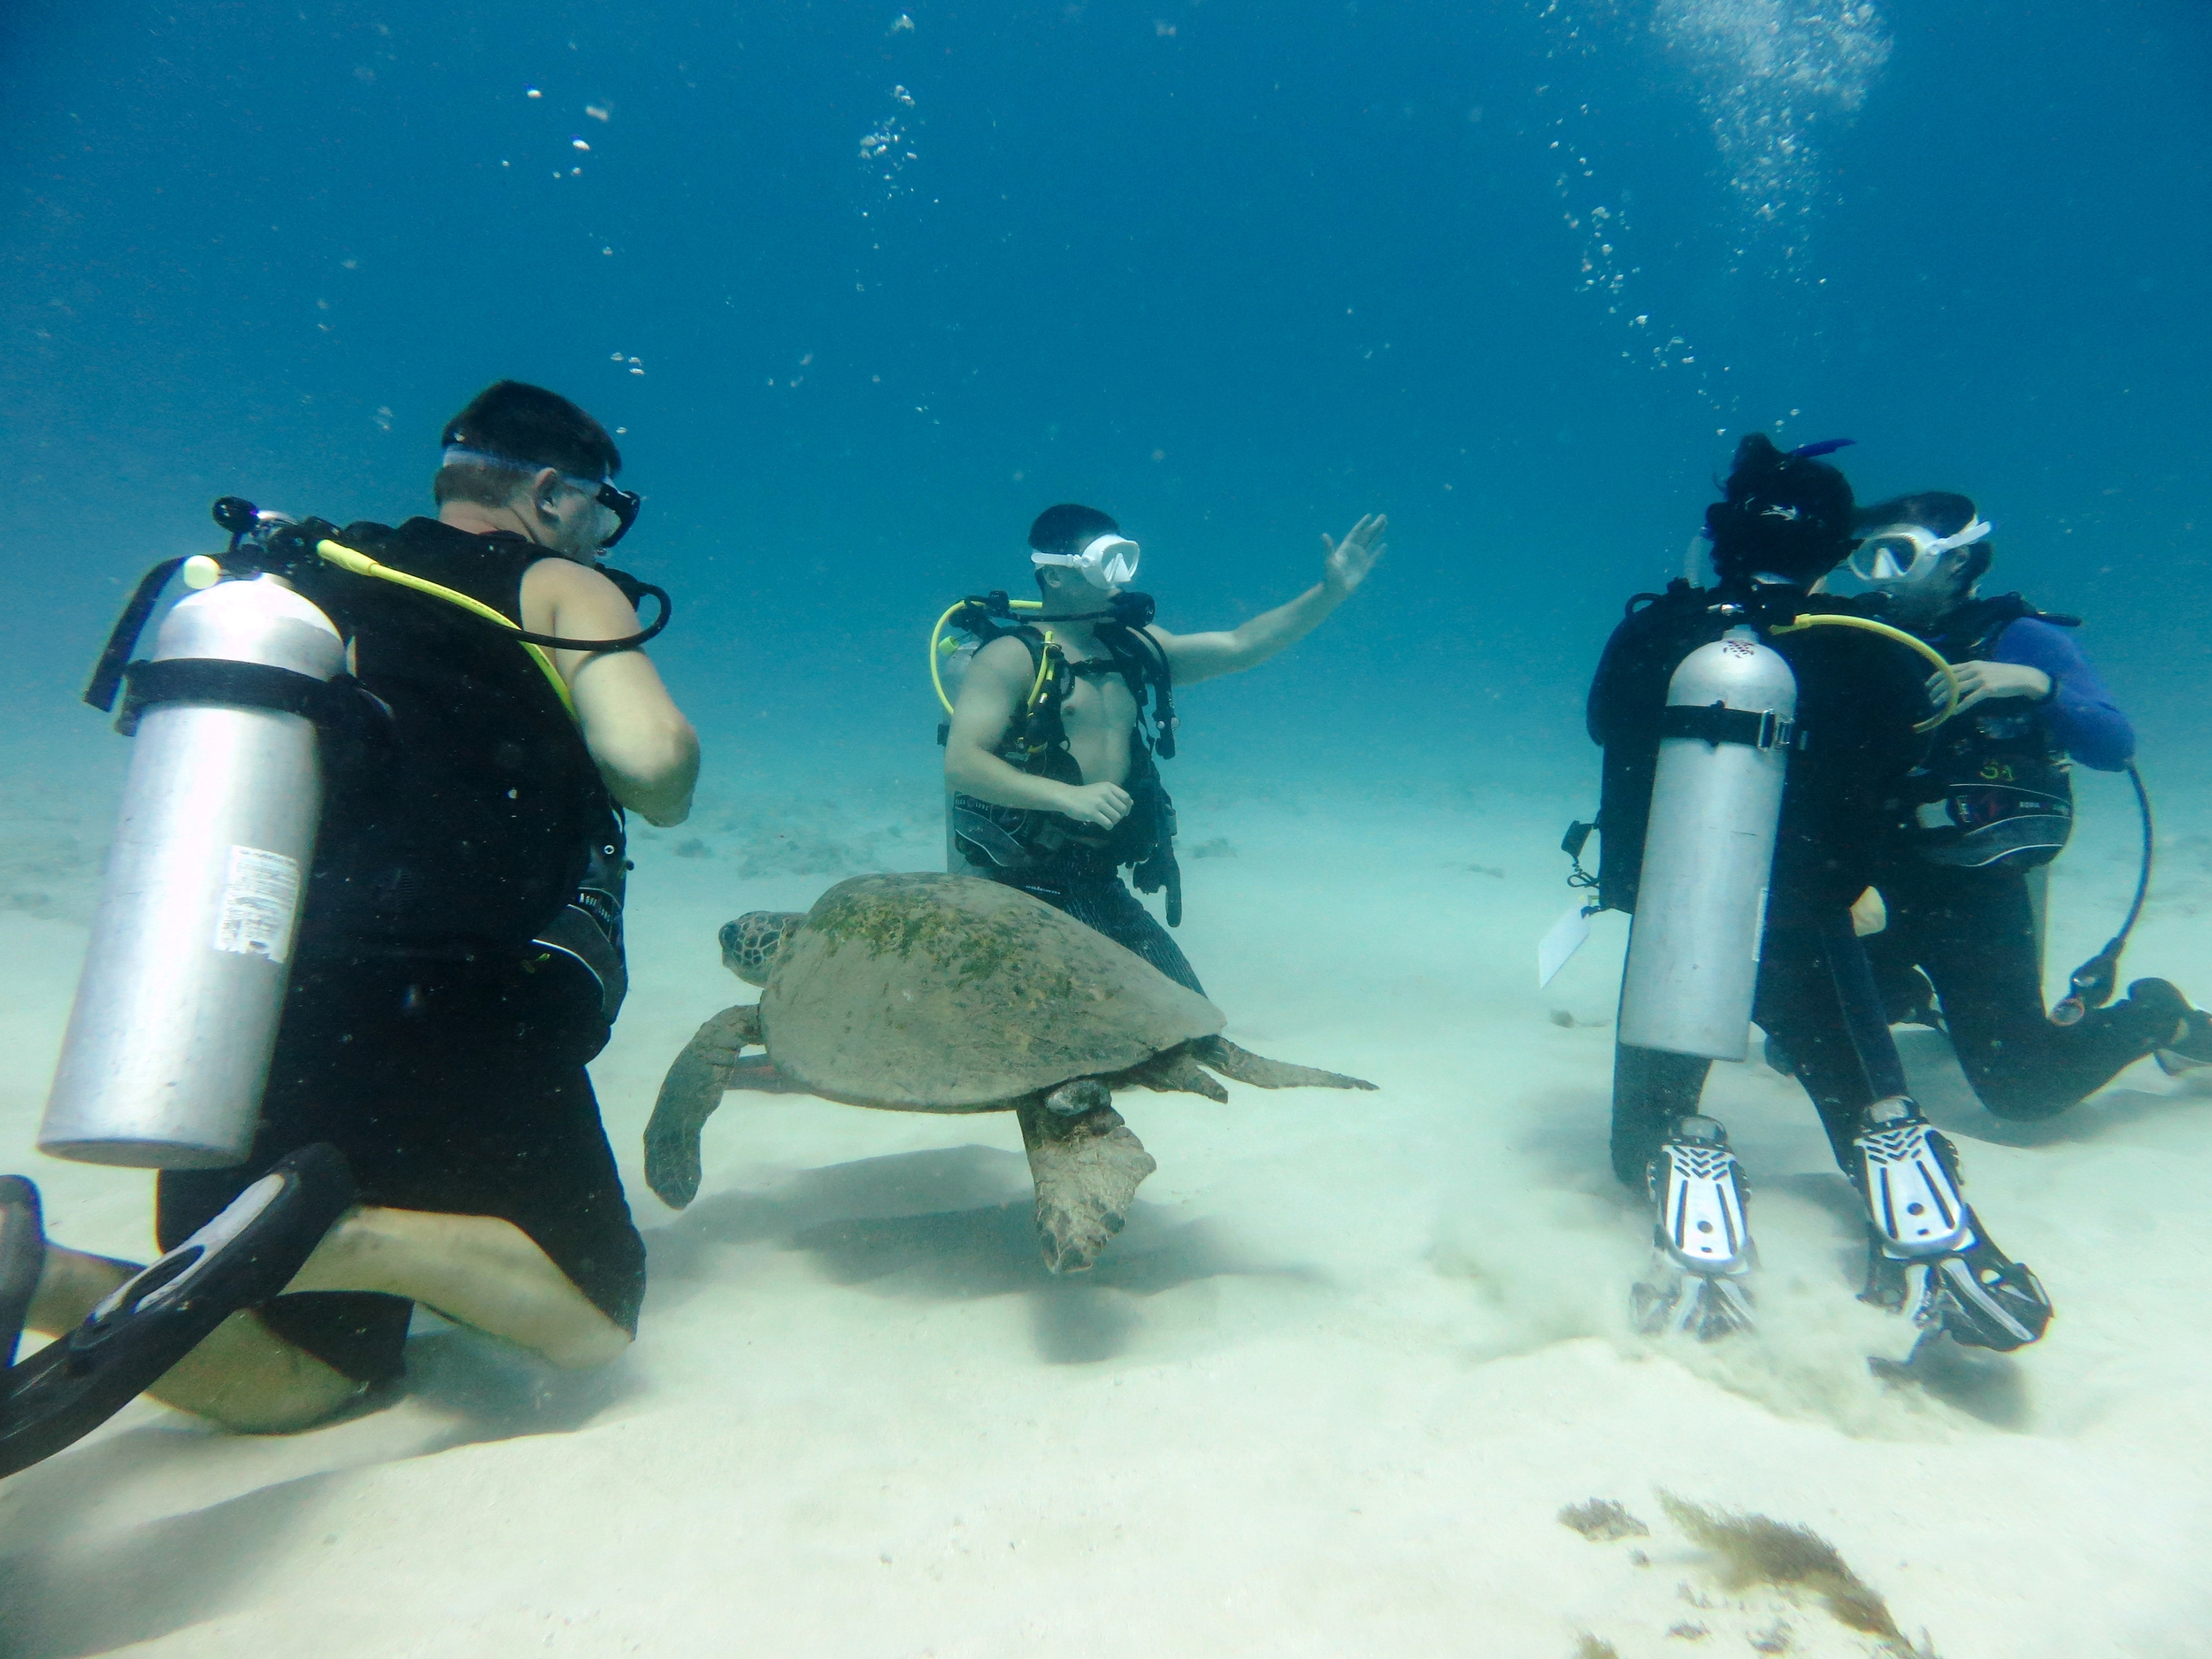 While we were meeting up on the sandy bottom, this turtle decided to join us!